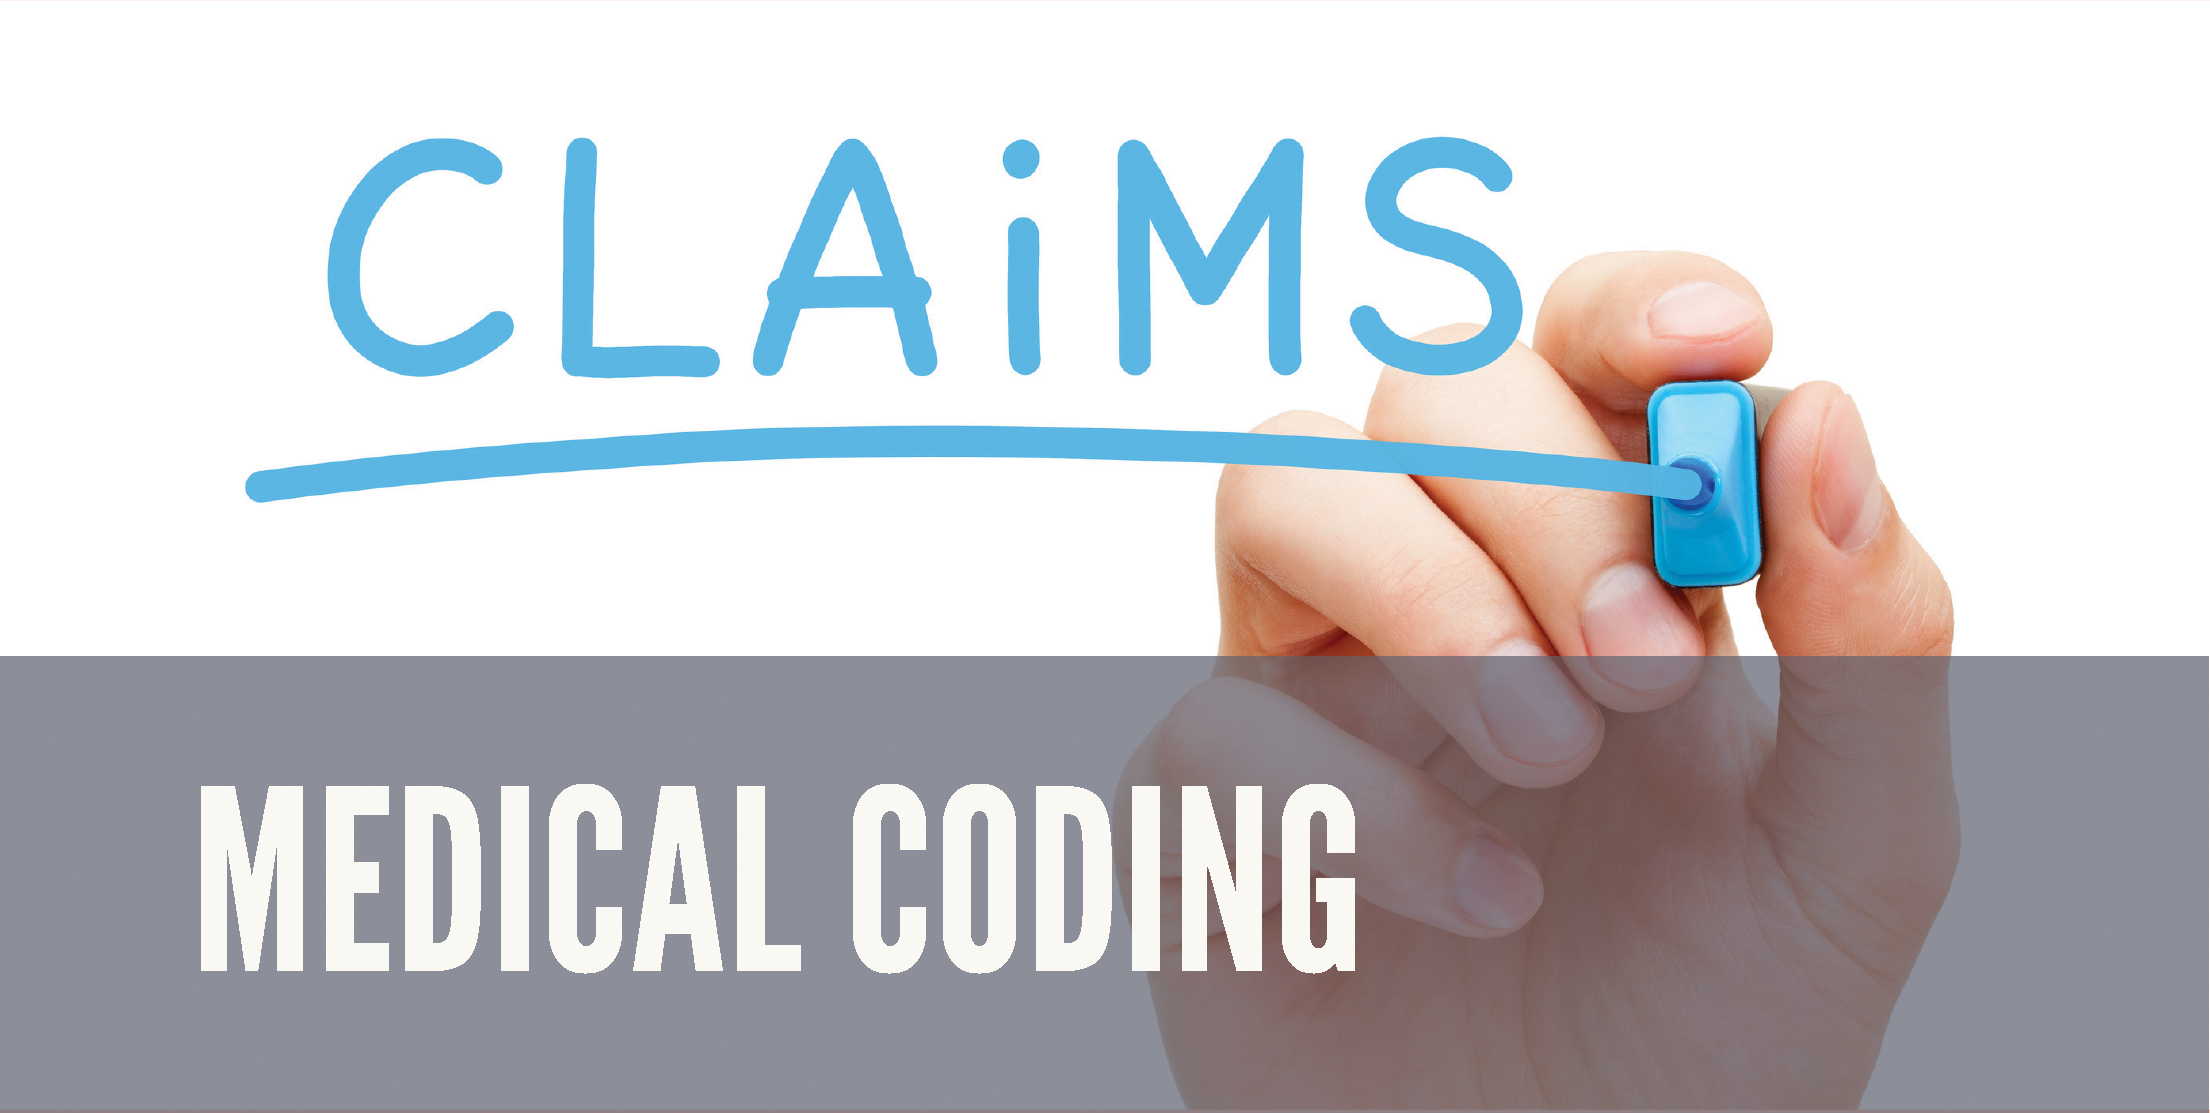 Medical Coding - Processing medical claims is big business and a key need in today's workplace. Accurate medical coding is essential to the delivery of quality health care and efficient health care administration. Learn fundamental knowledge of ICD, CPT & HCPCS coding. This course will assist coders in developing an in-depth understanding of complex coding conventions, terminology and rules for ICD & CPT. Students will also gain extensive training in medical terminology, anatomy and physiology, and pharmacology. Course Duration: 17 weeks total (split into 3 modules)